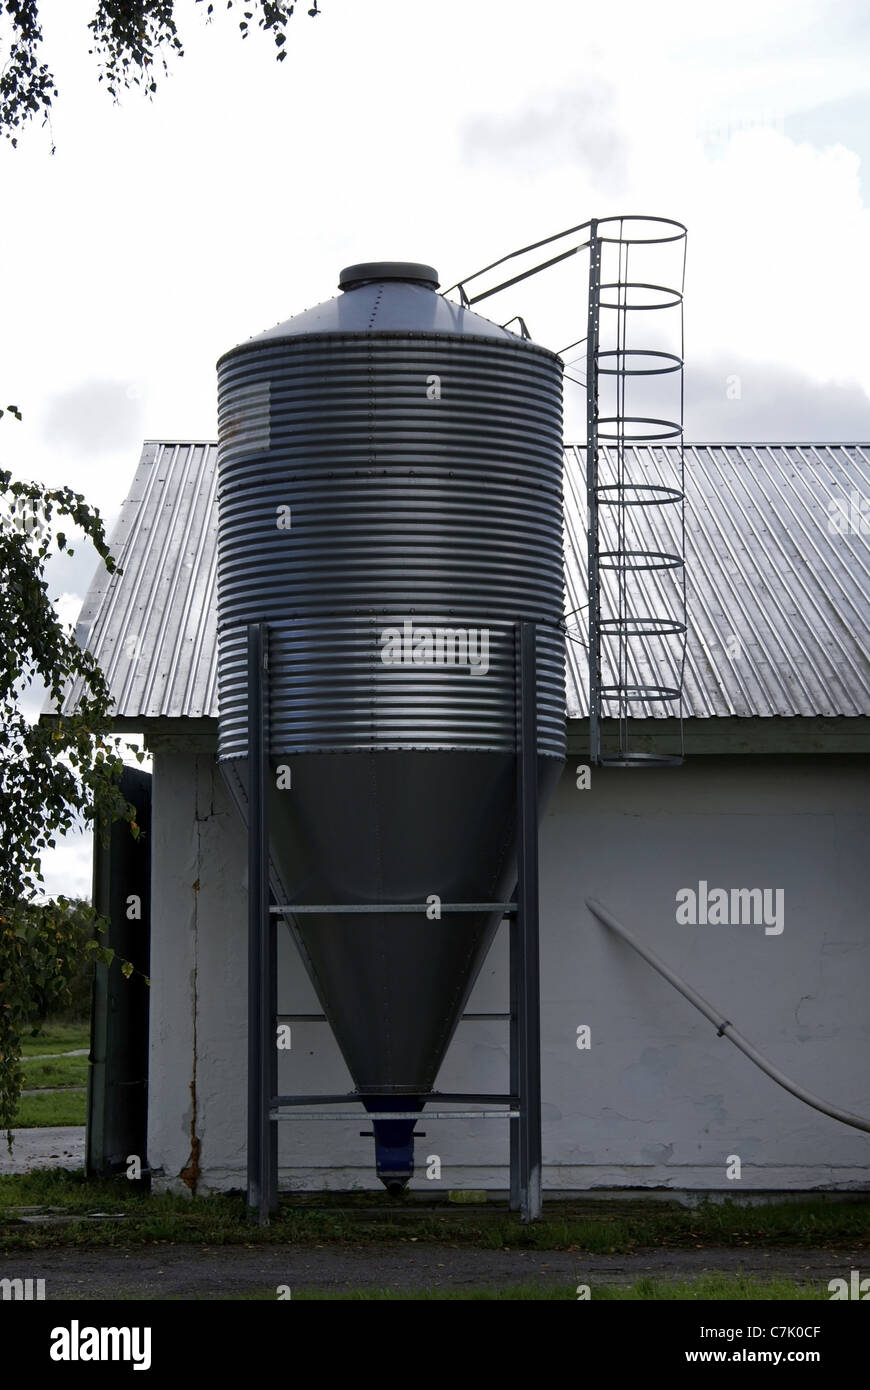 The industrial tank for a forage at the bird's factory - Stock Image